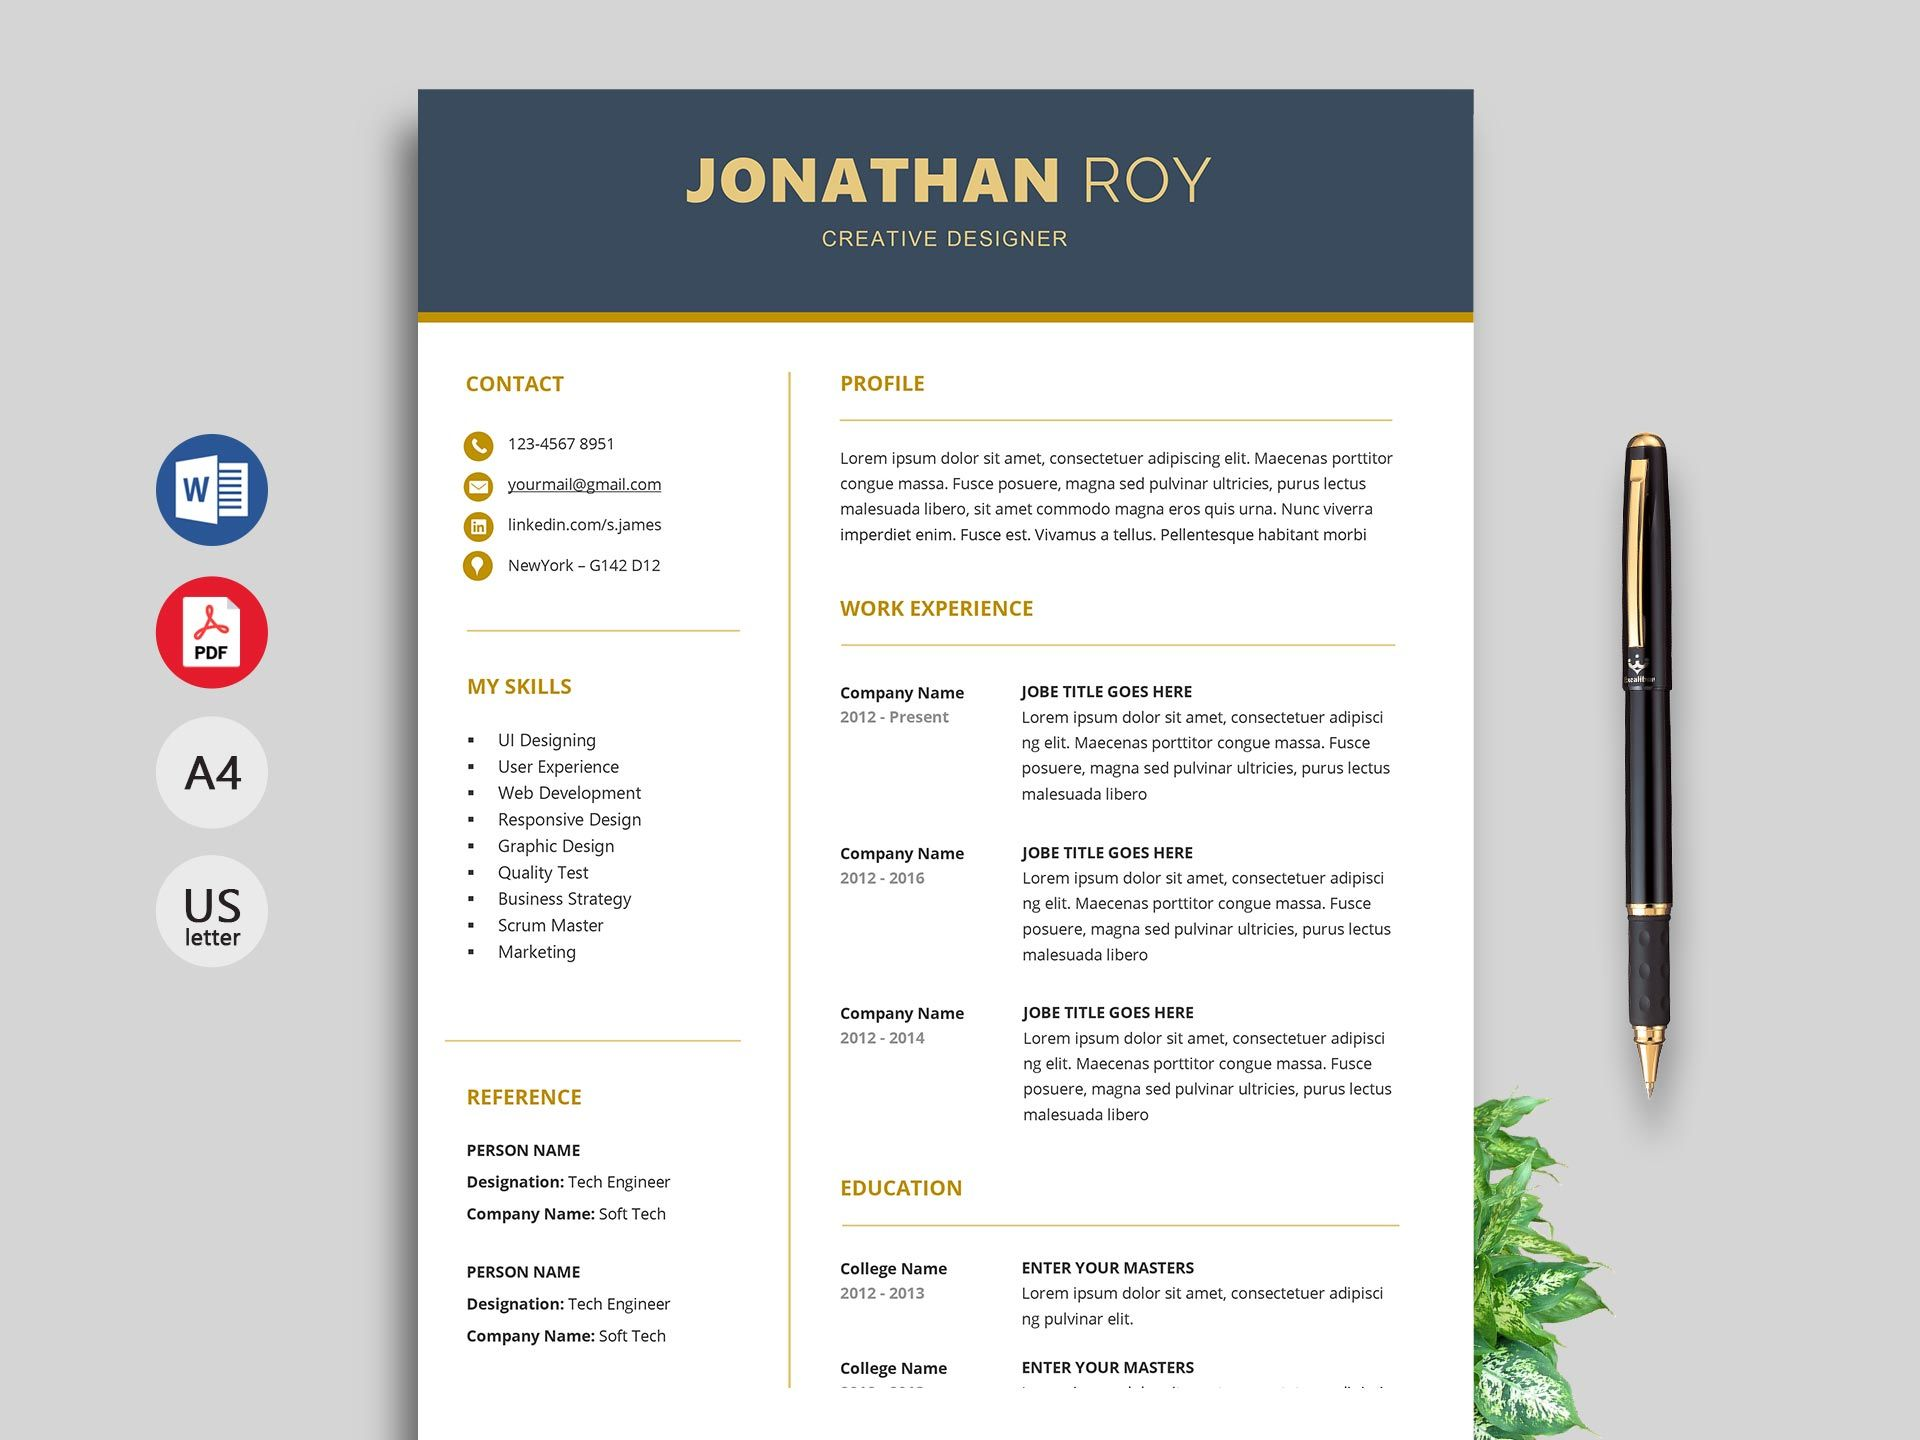 Resume templates examples free word doc in 2020 Resume